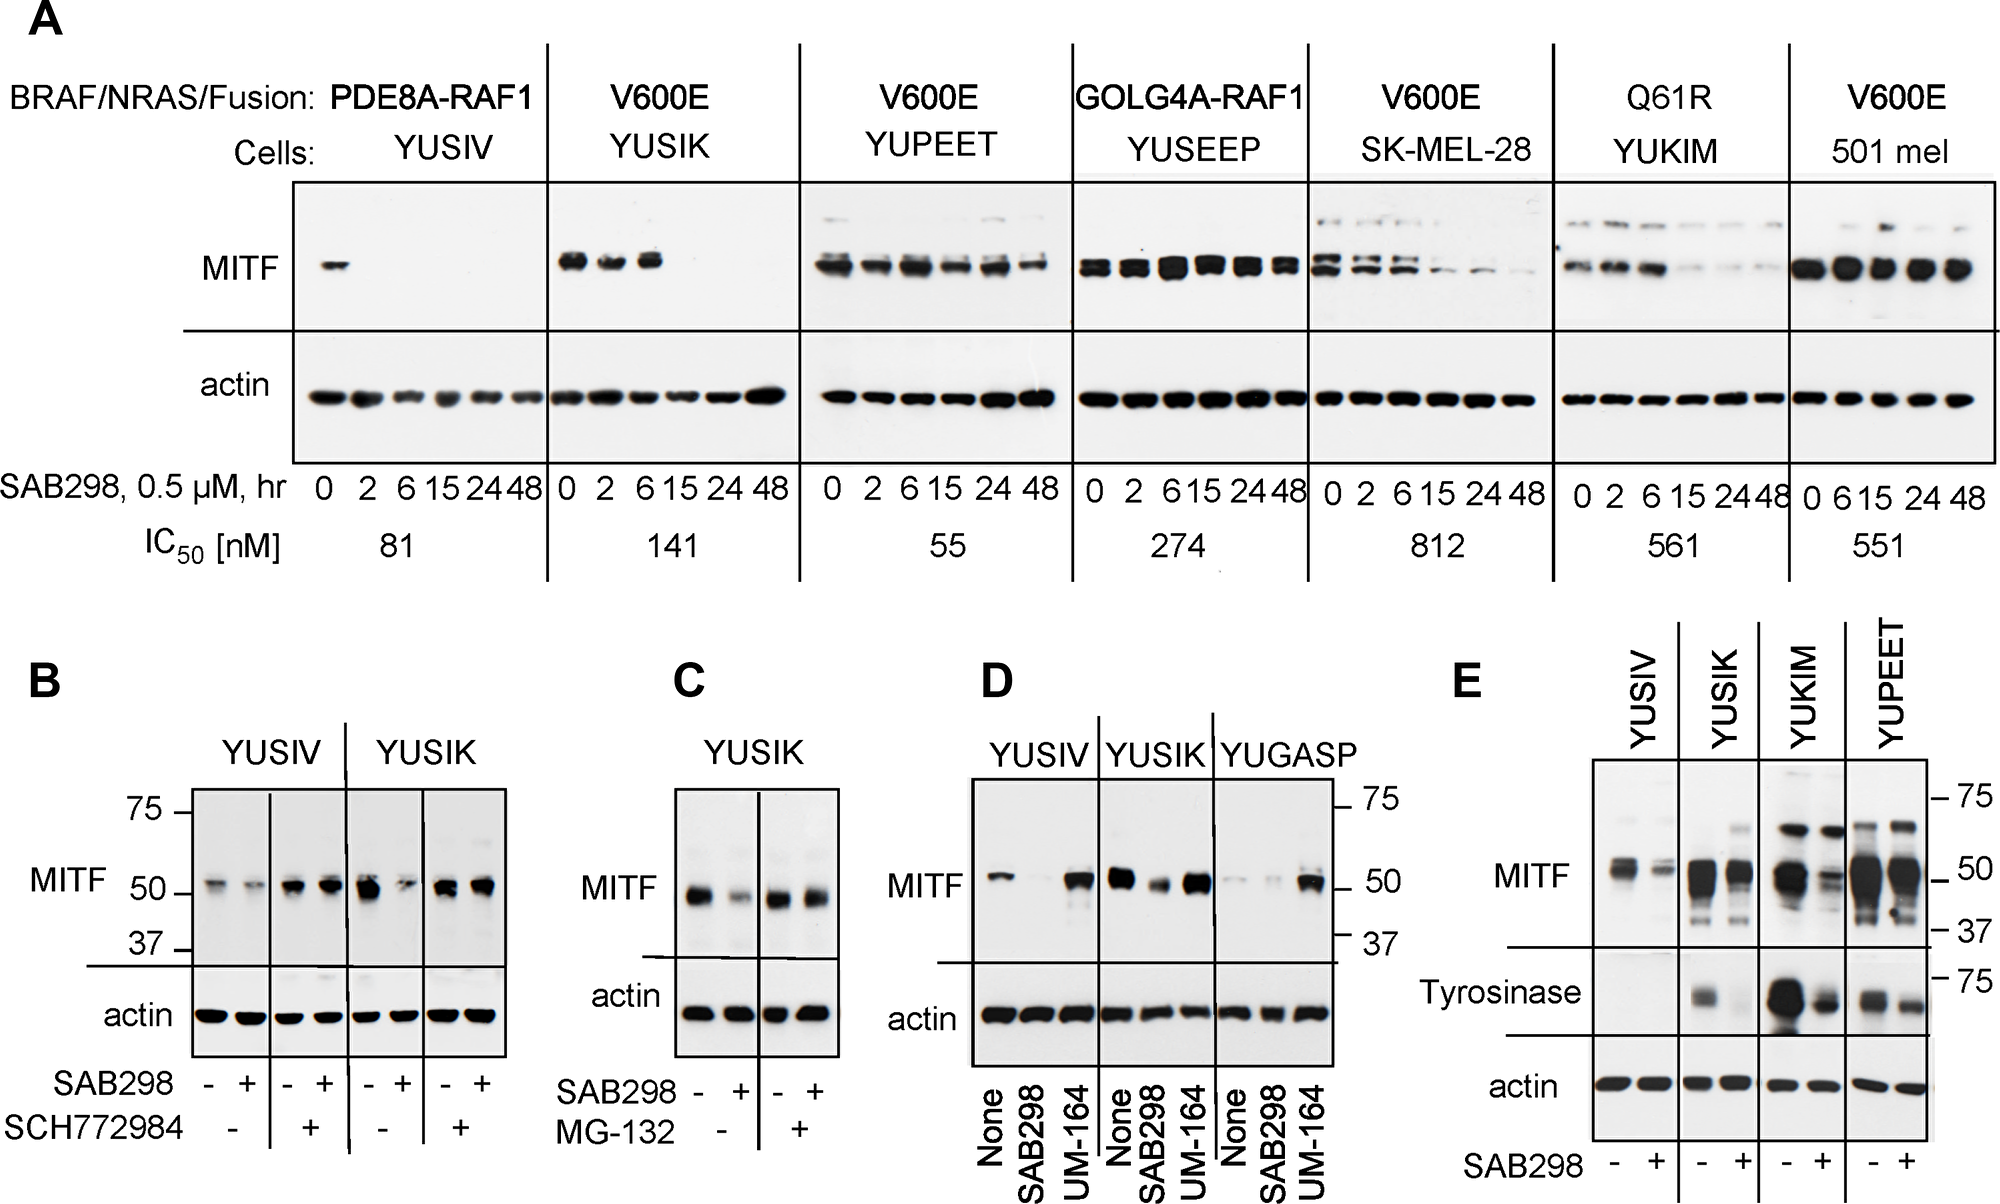 Suppression of MITF in response to SAB298.